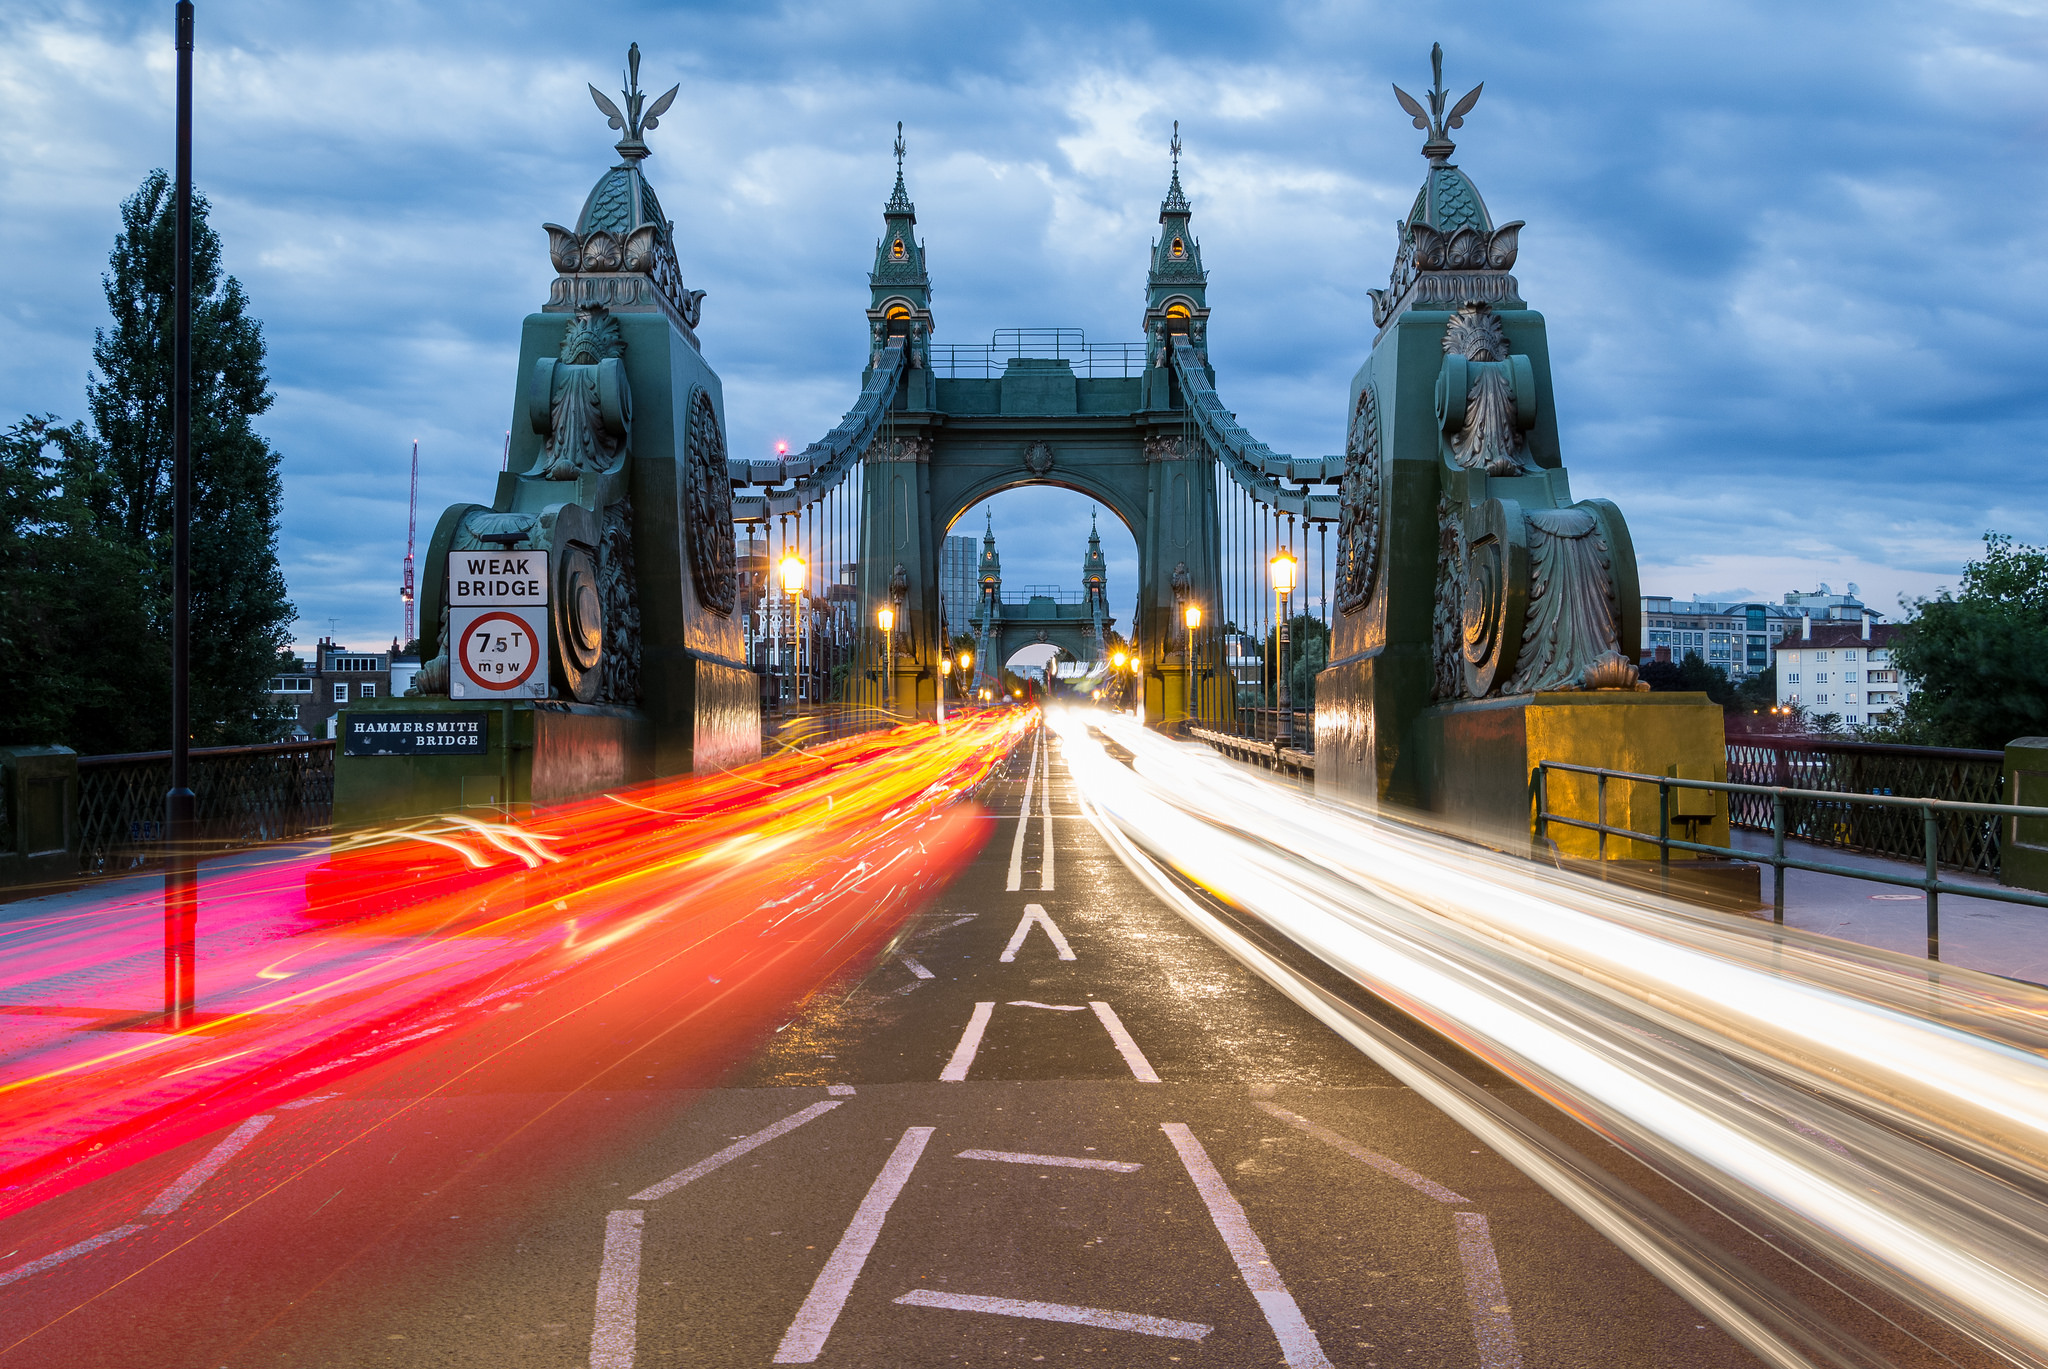 обои Hammersmith Bridge, England, London, River Thames картинки фото